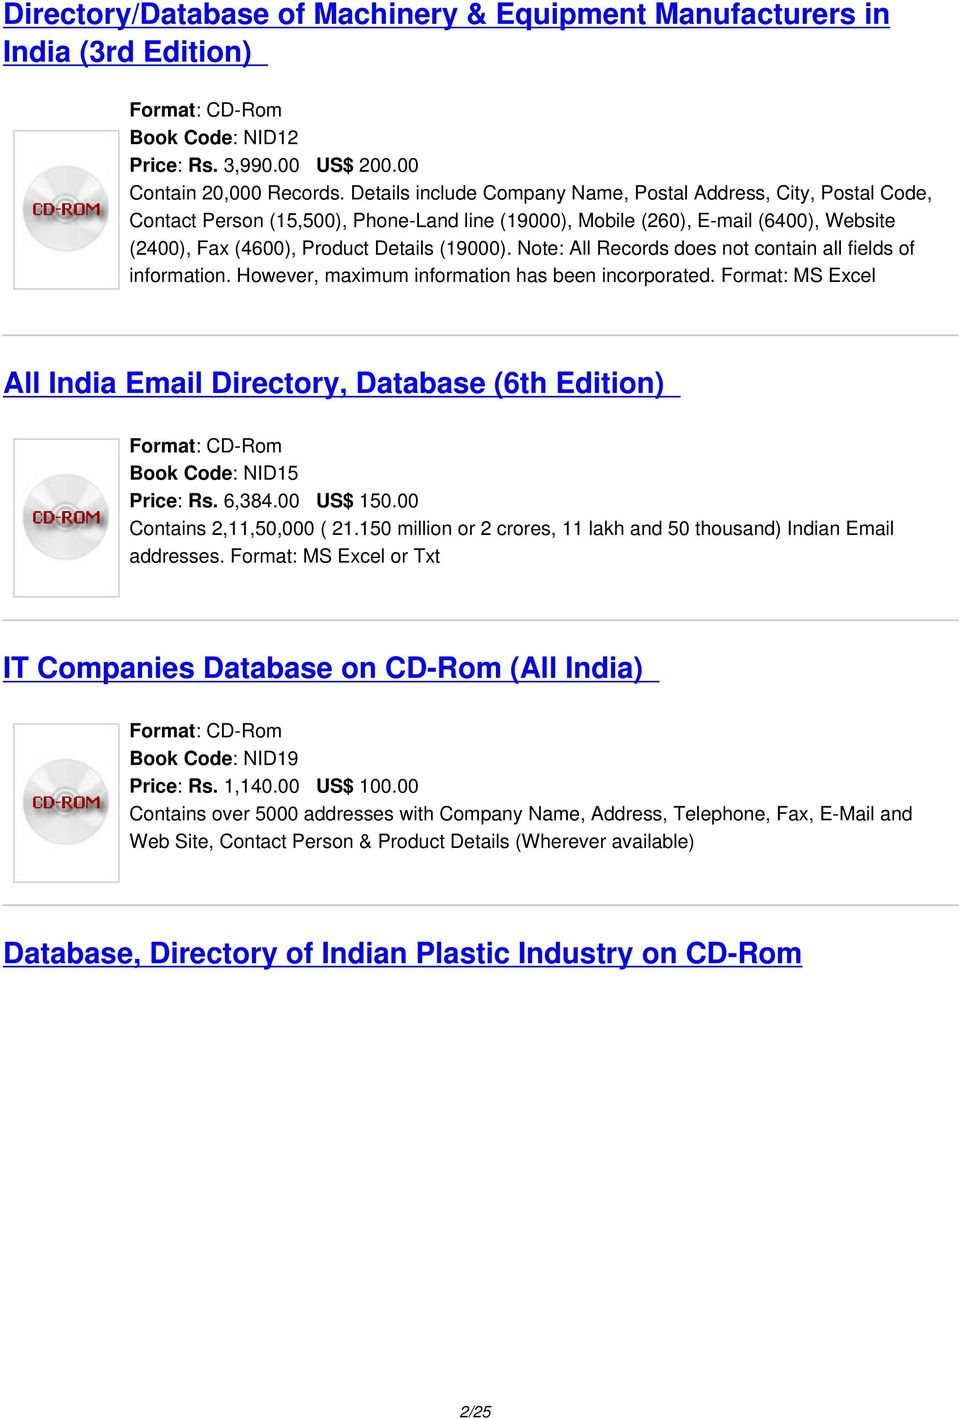 All India Companies, Industries, Business houses, Corporates